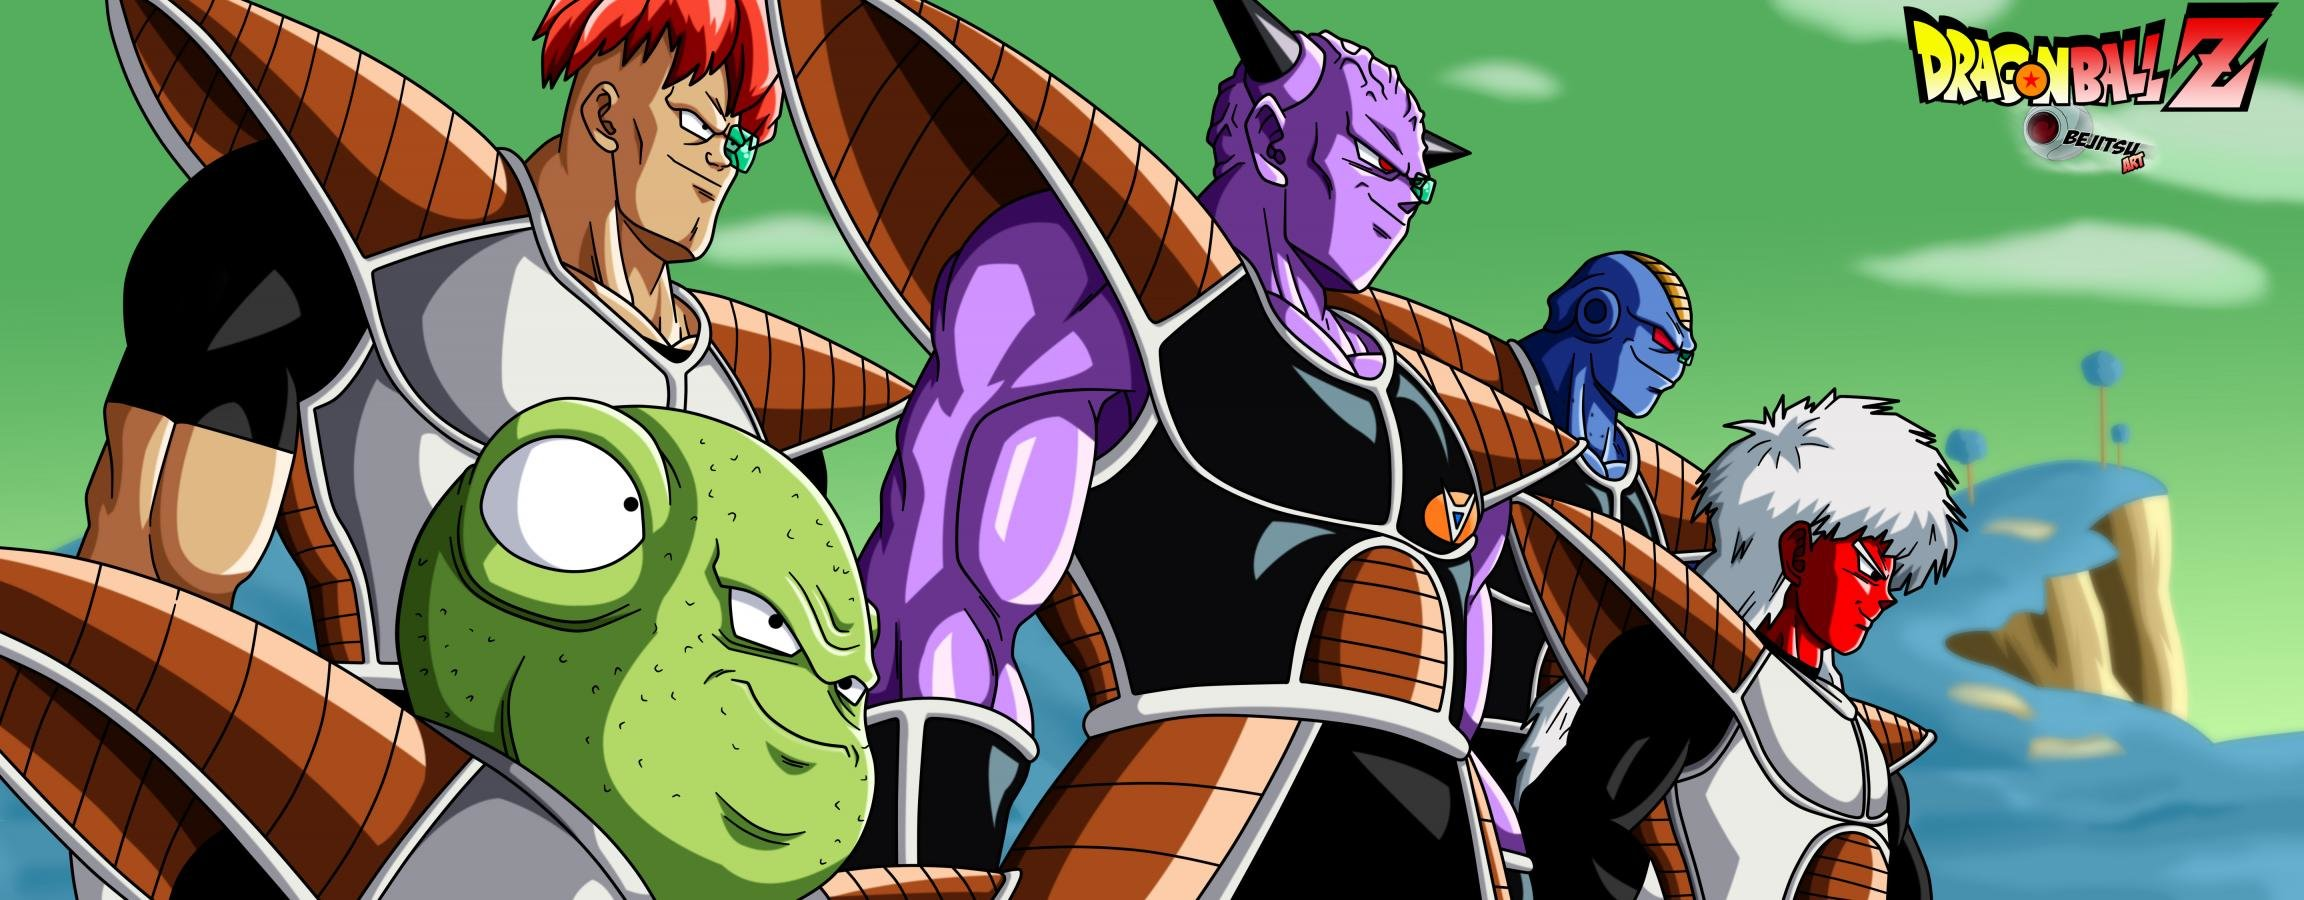 Dual Monitor Dragon Ball Z Dbz Wallpapers Hd Backgrounds